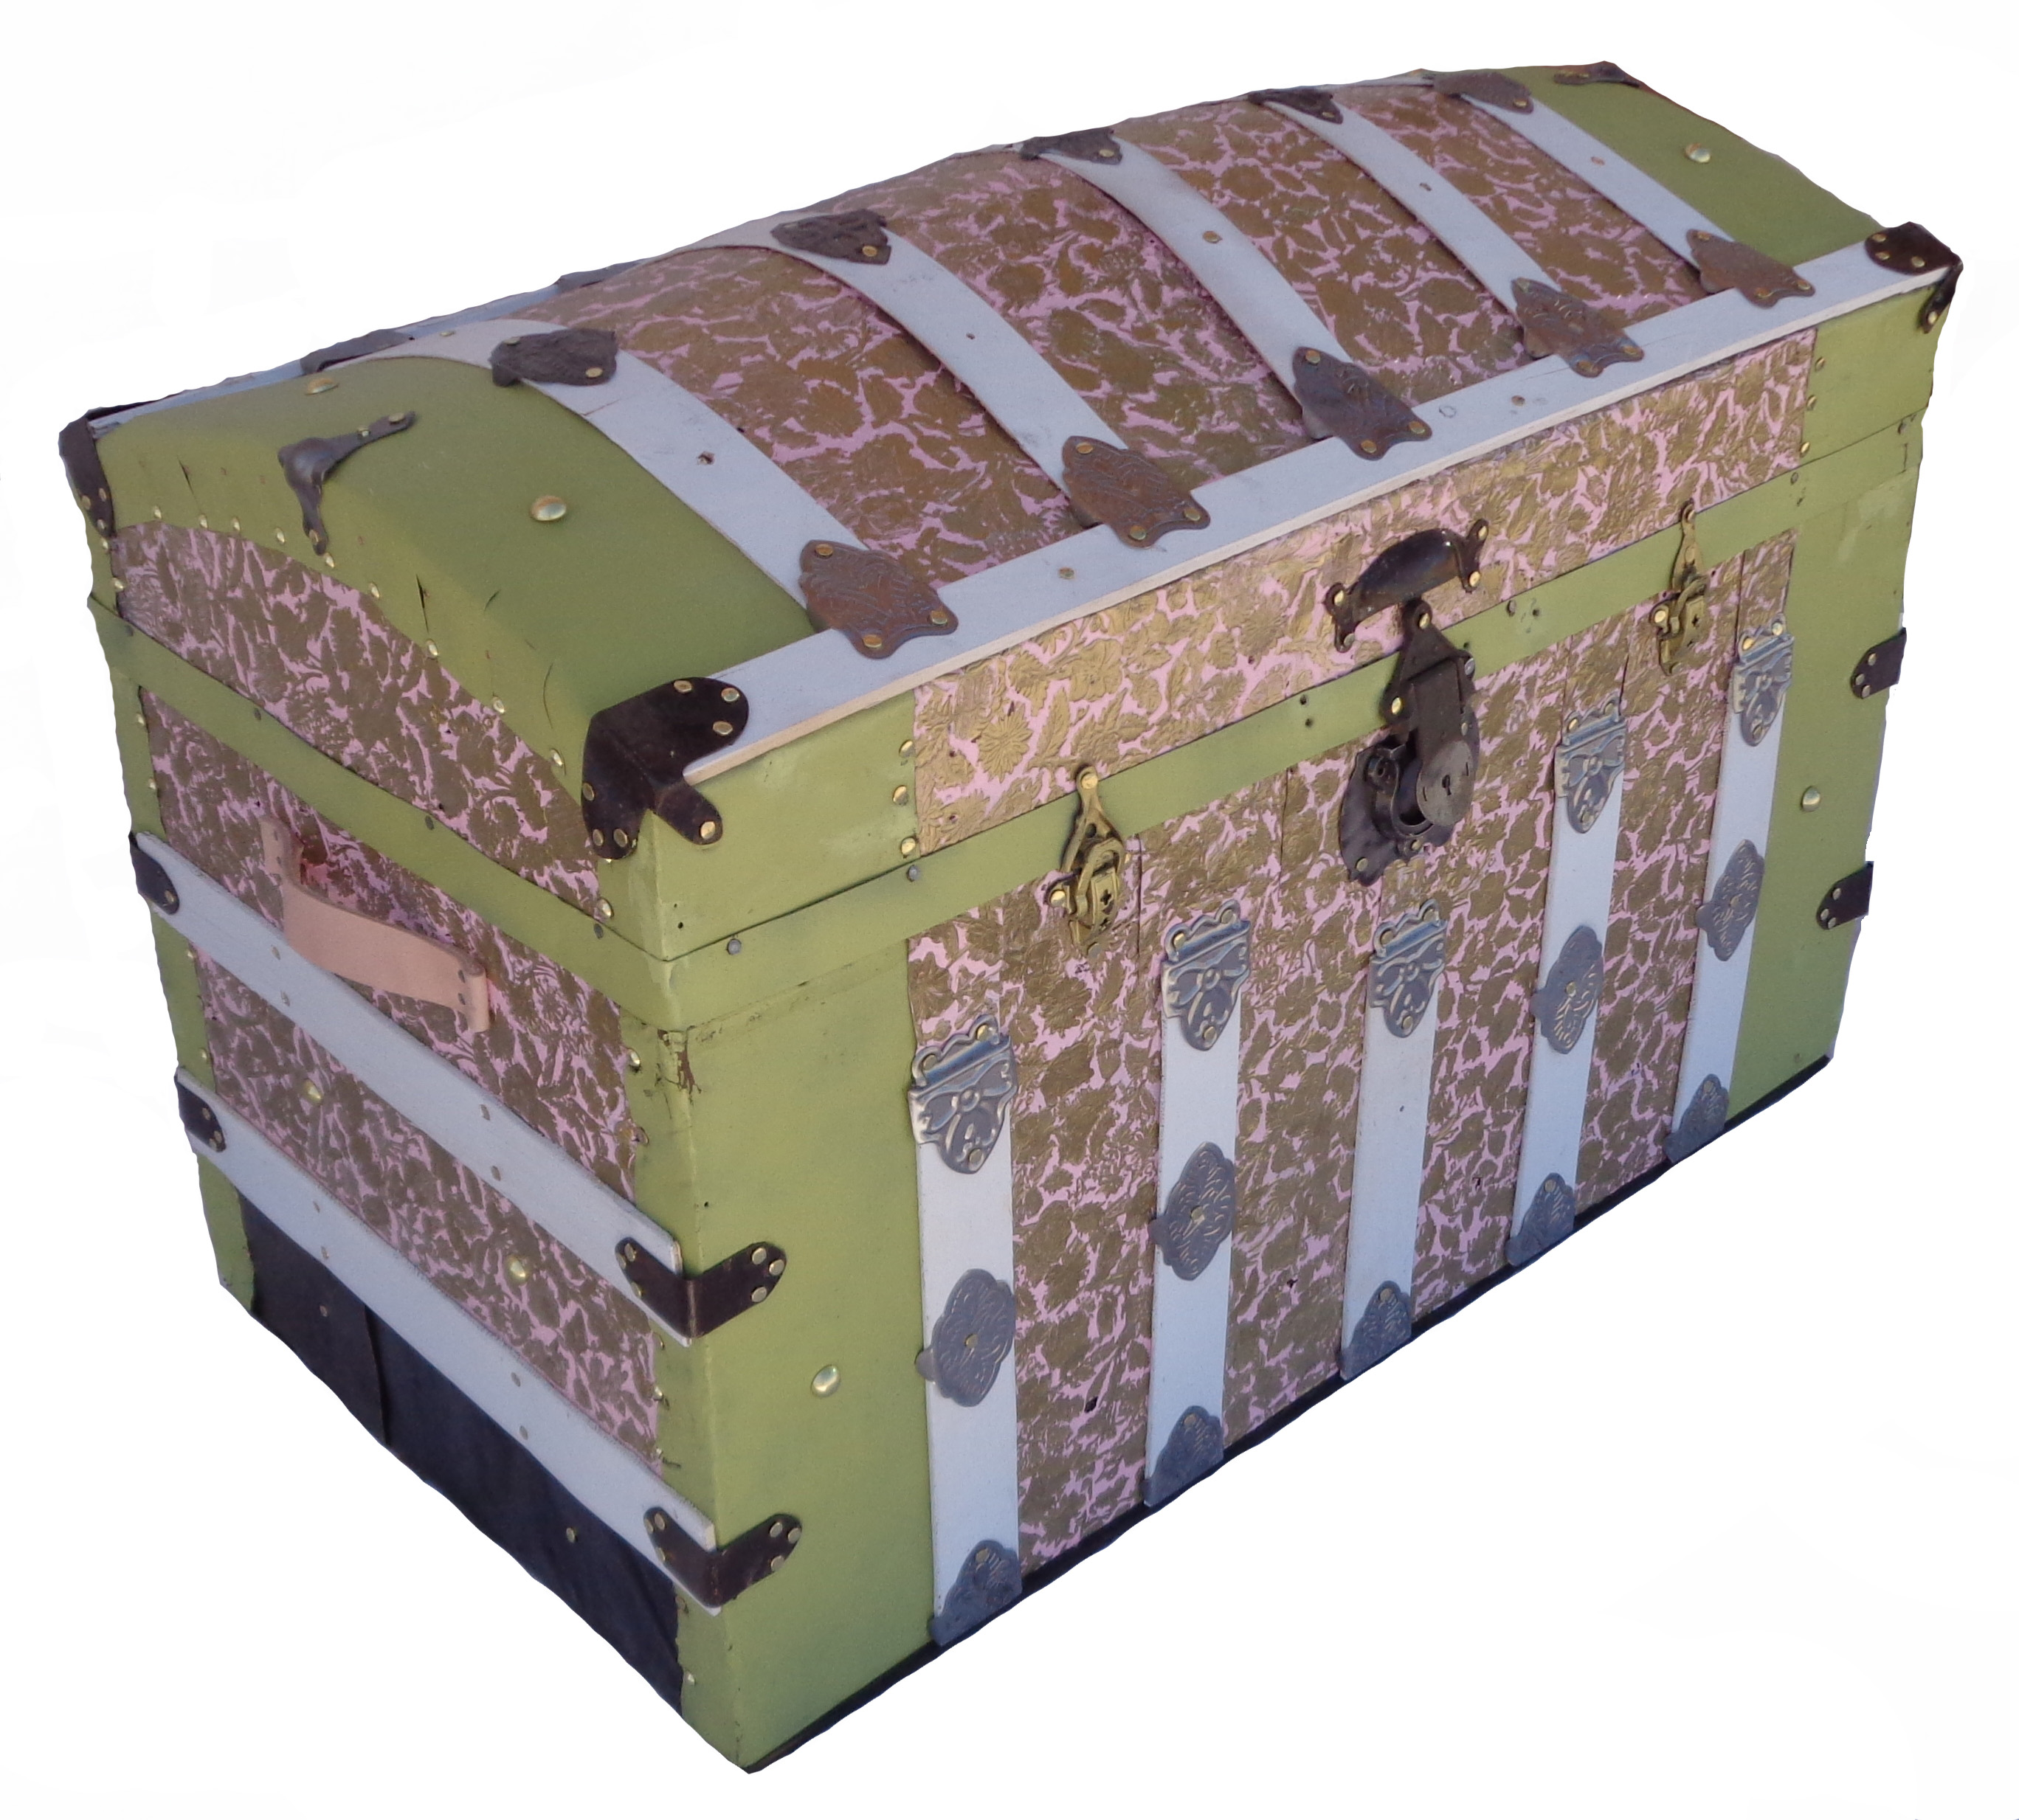 decorative invt uk baskets boxes decor view kubu resp ashley trunks trunk storage laura large